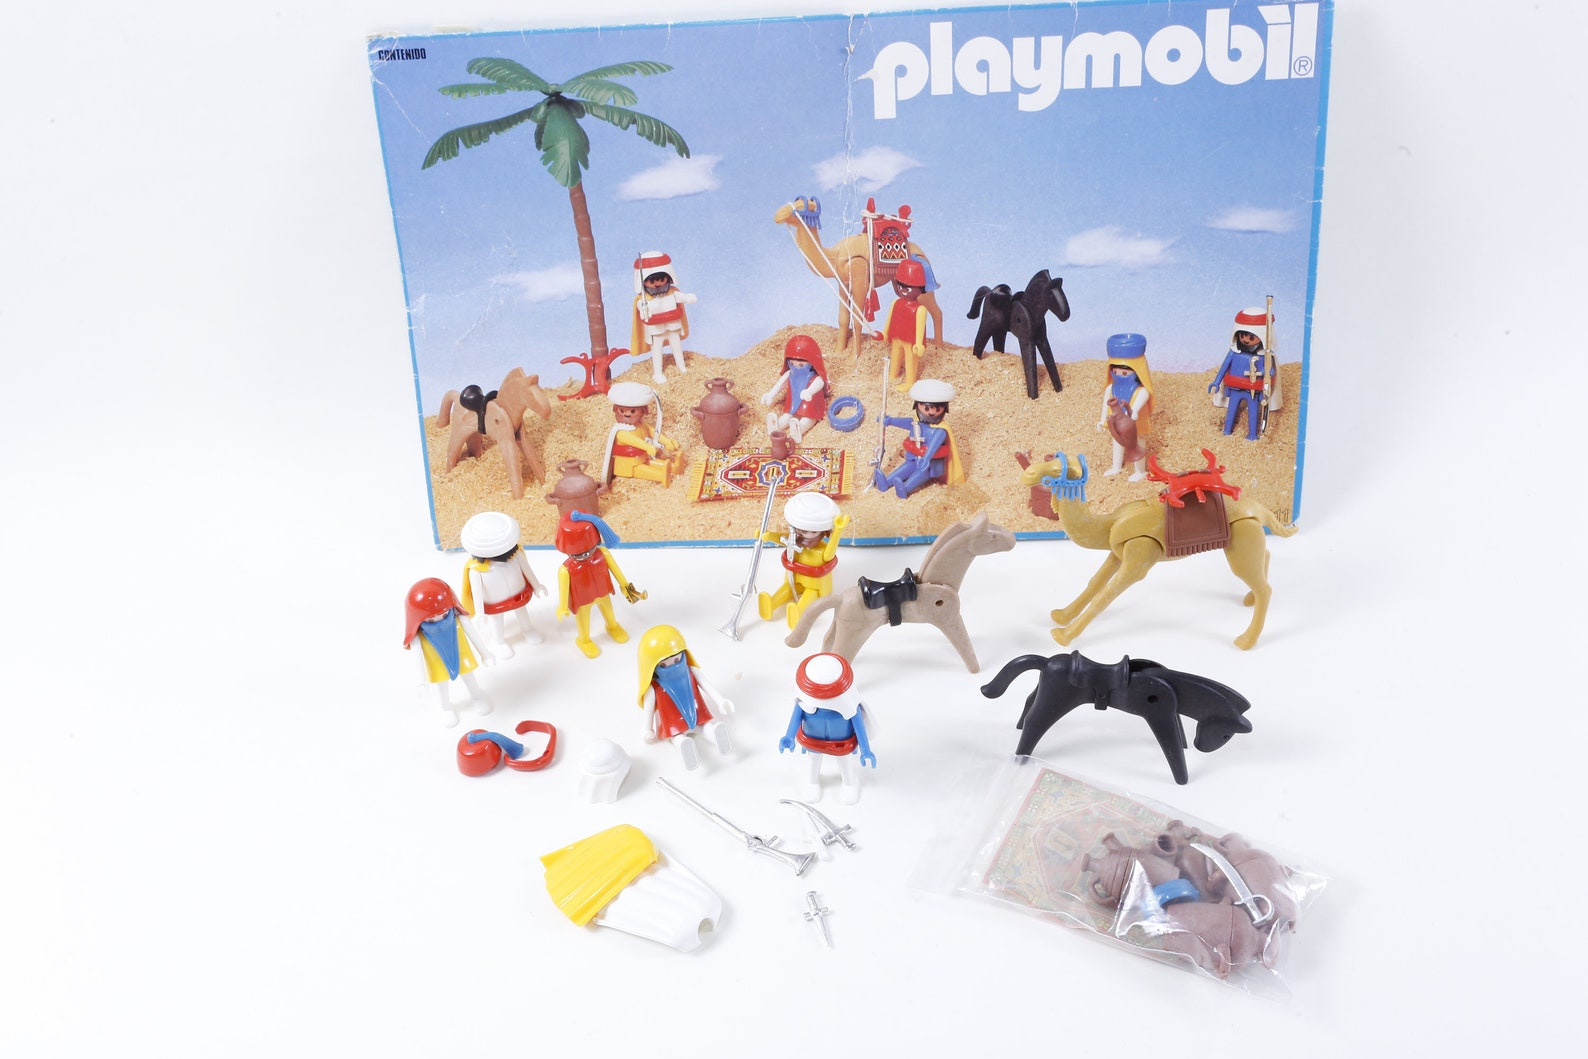 Vintage, 1977, Contenido, Playmobil, Toy, Set, Figures, Camel, Horse, People, Eastern Desert, Collection, Children, Camel, Desert ~ 170125